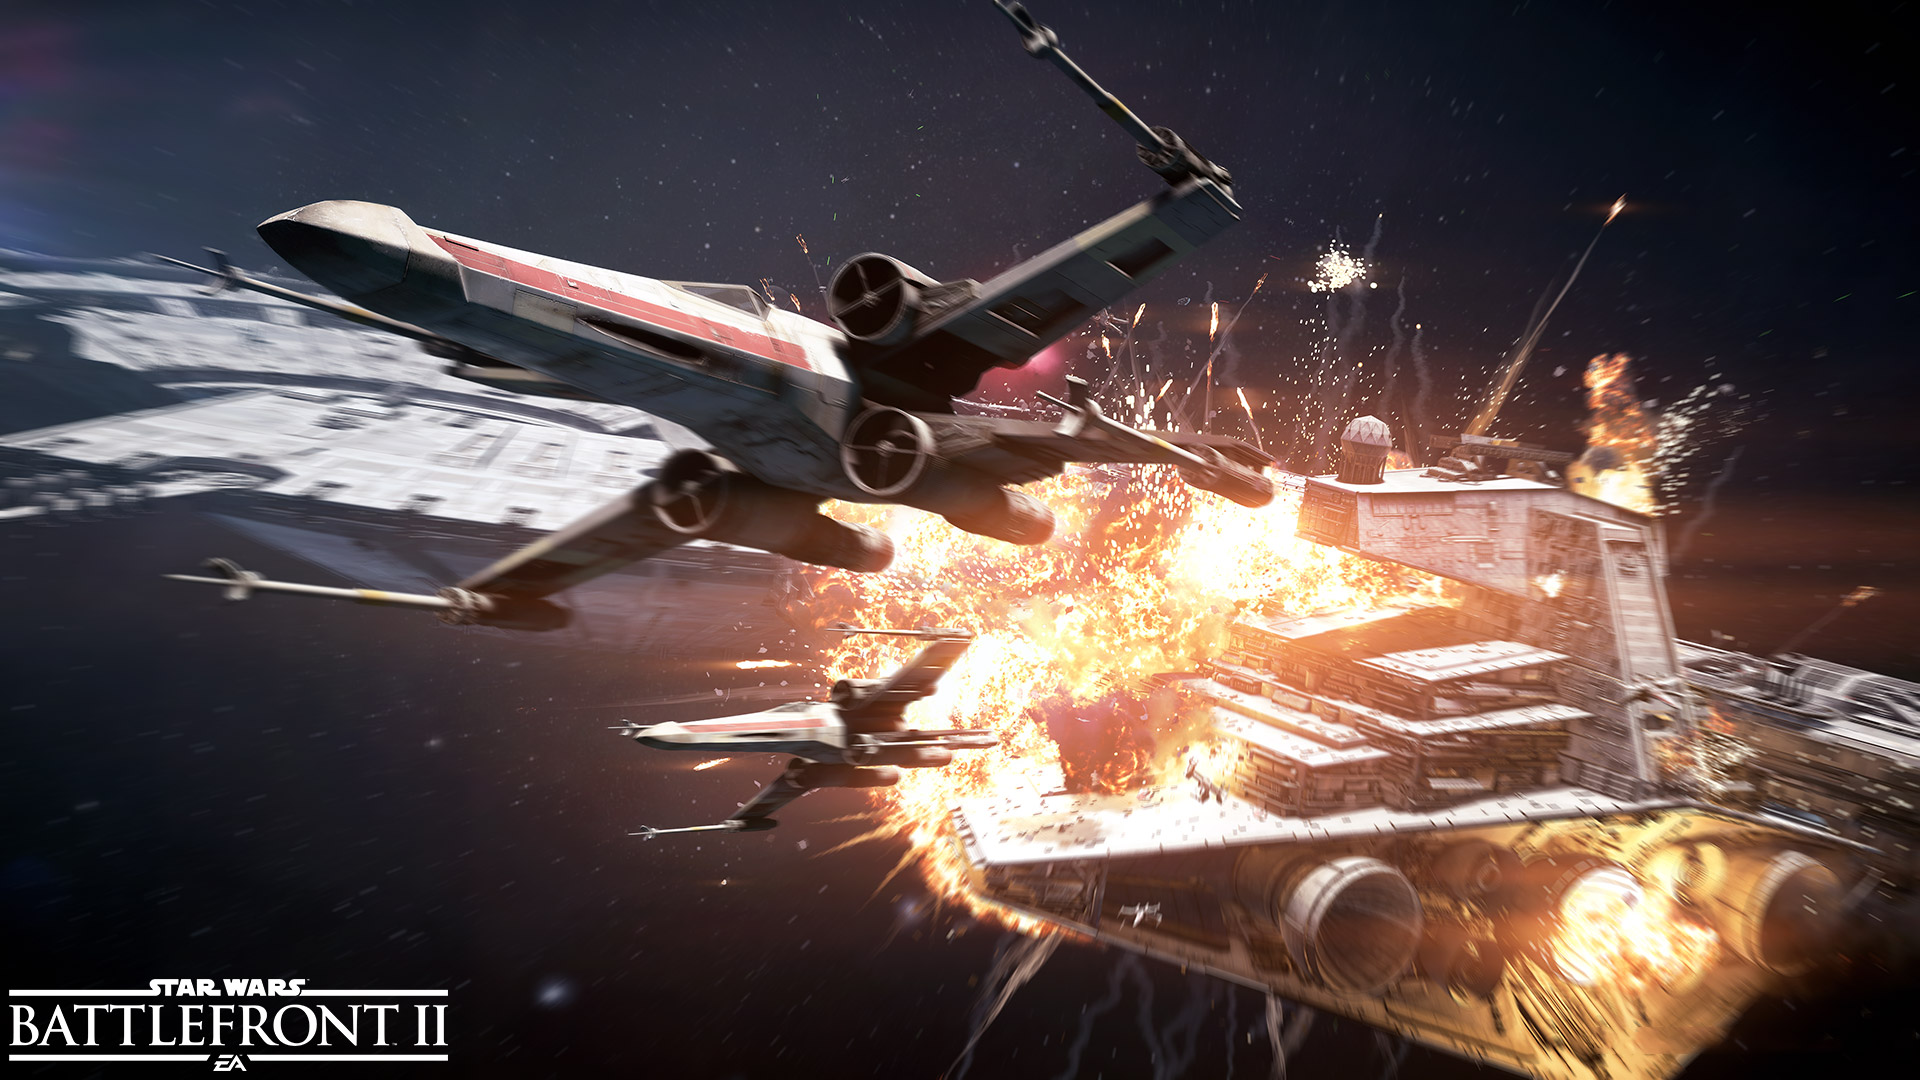 Star Wars Battlefront 2 wallpaper 7